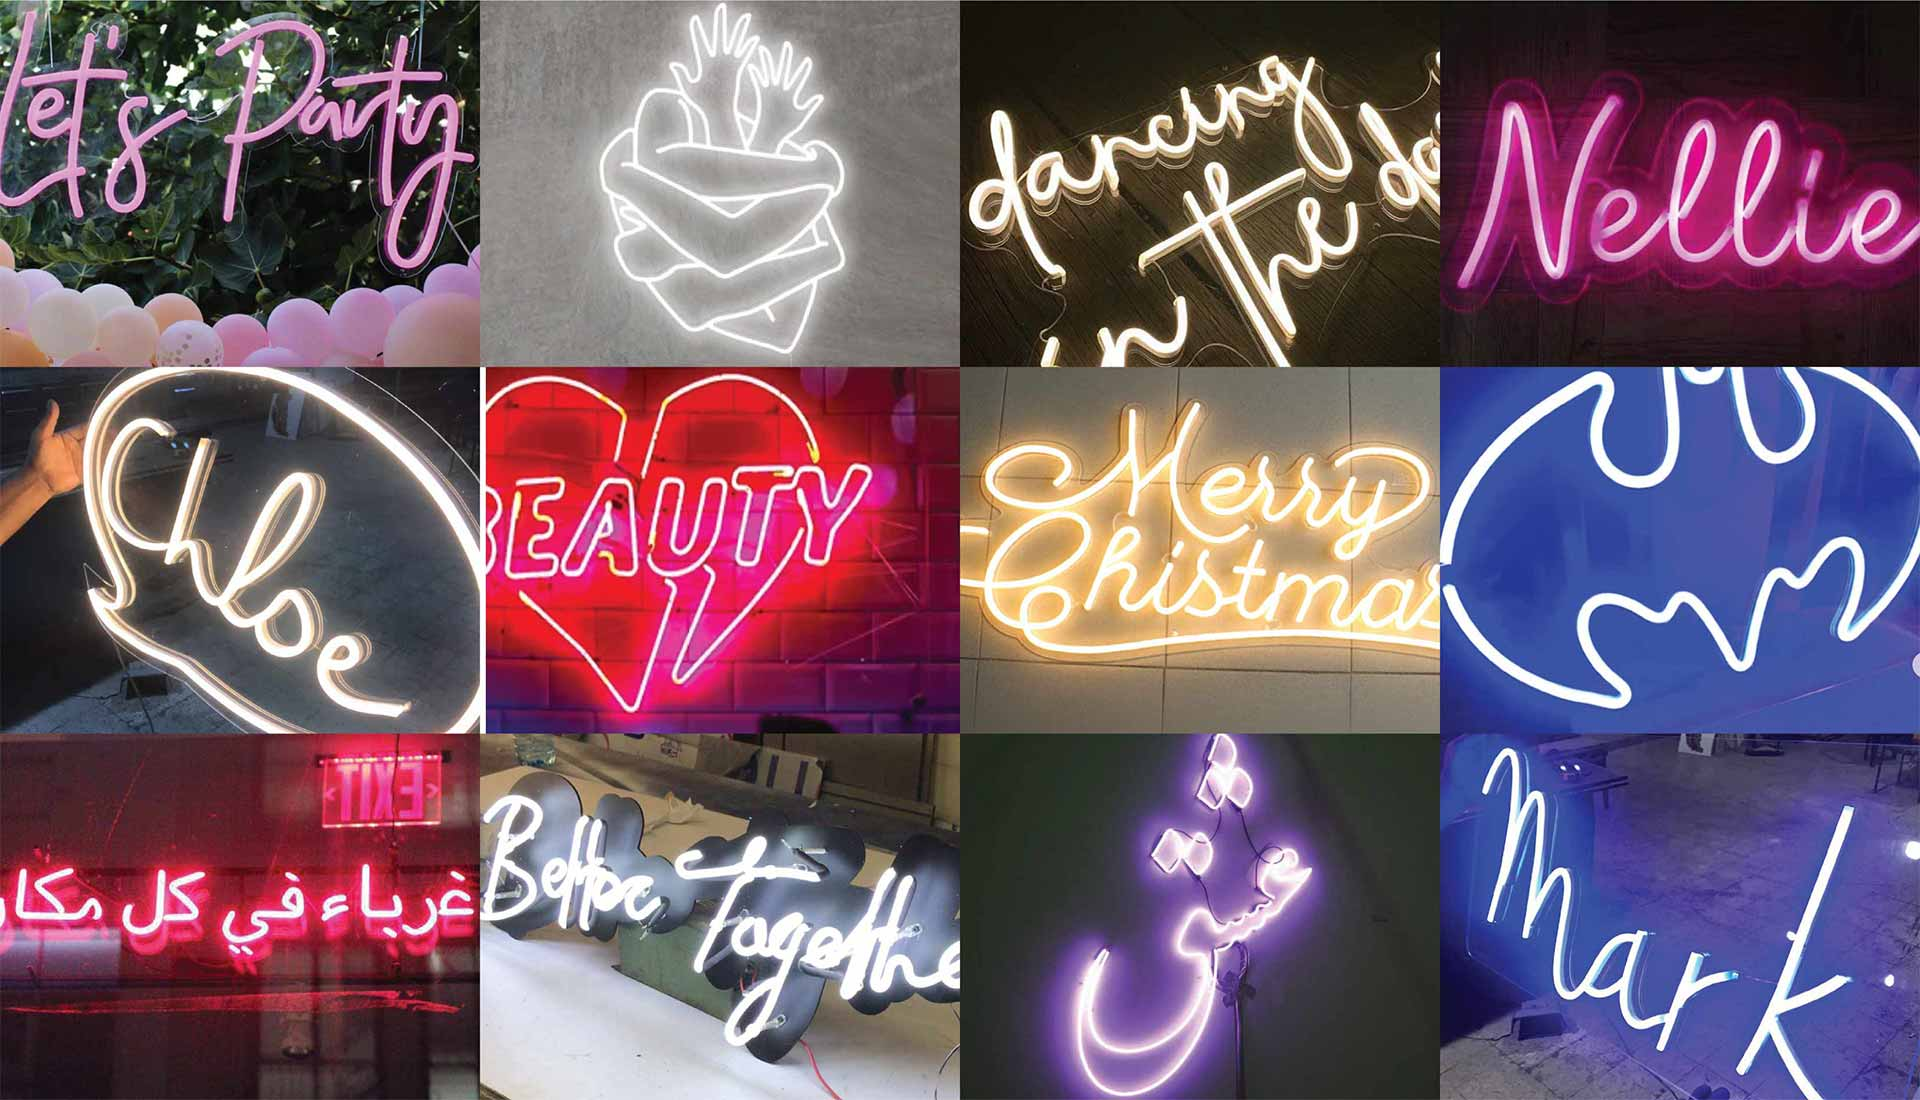 led neon signs customized your sign by super neon sabra in lebanon, beirut.